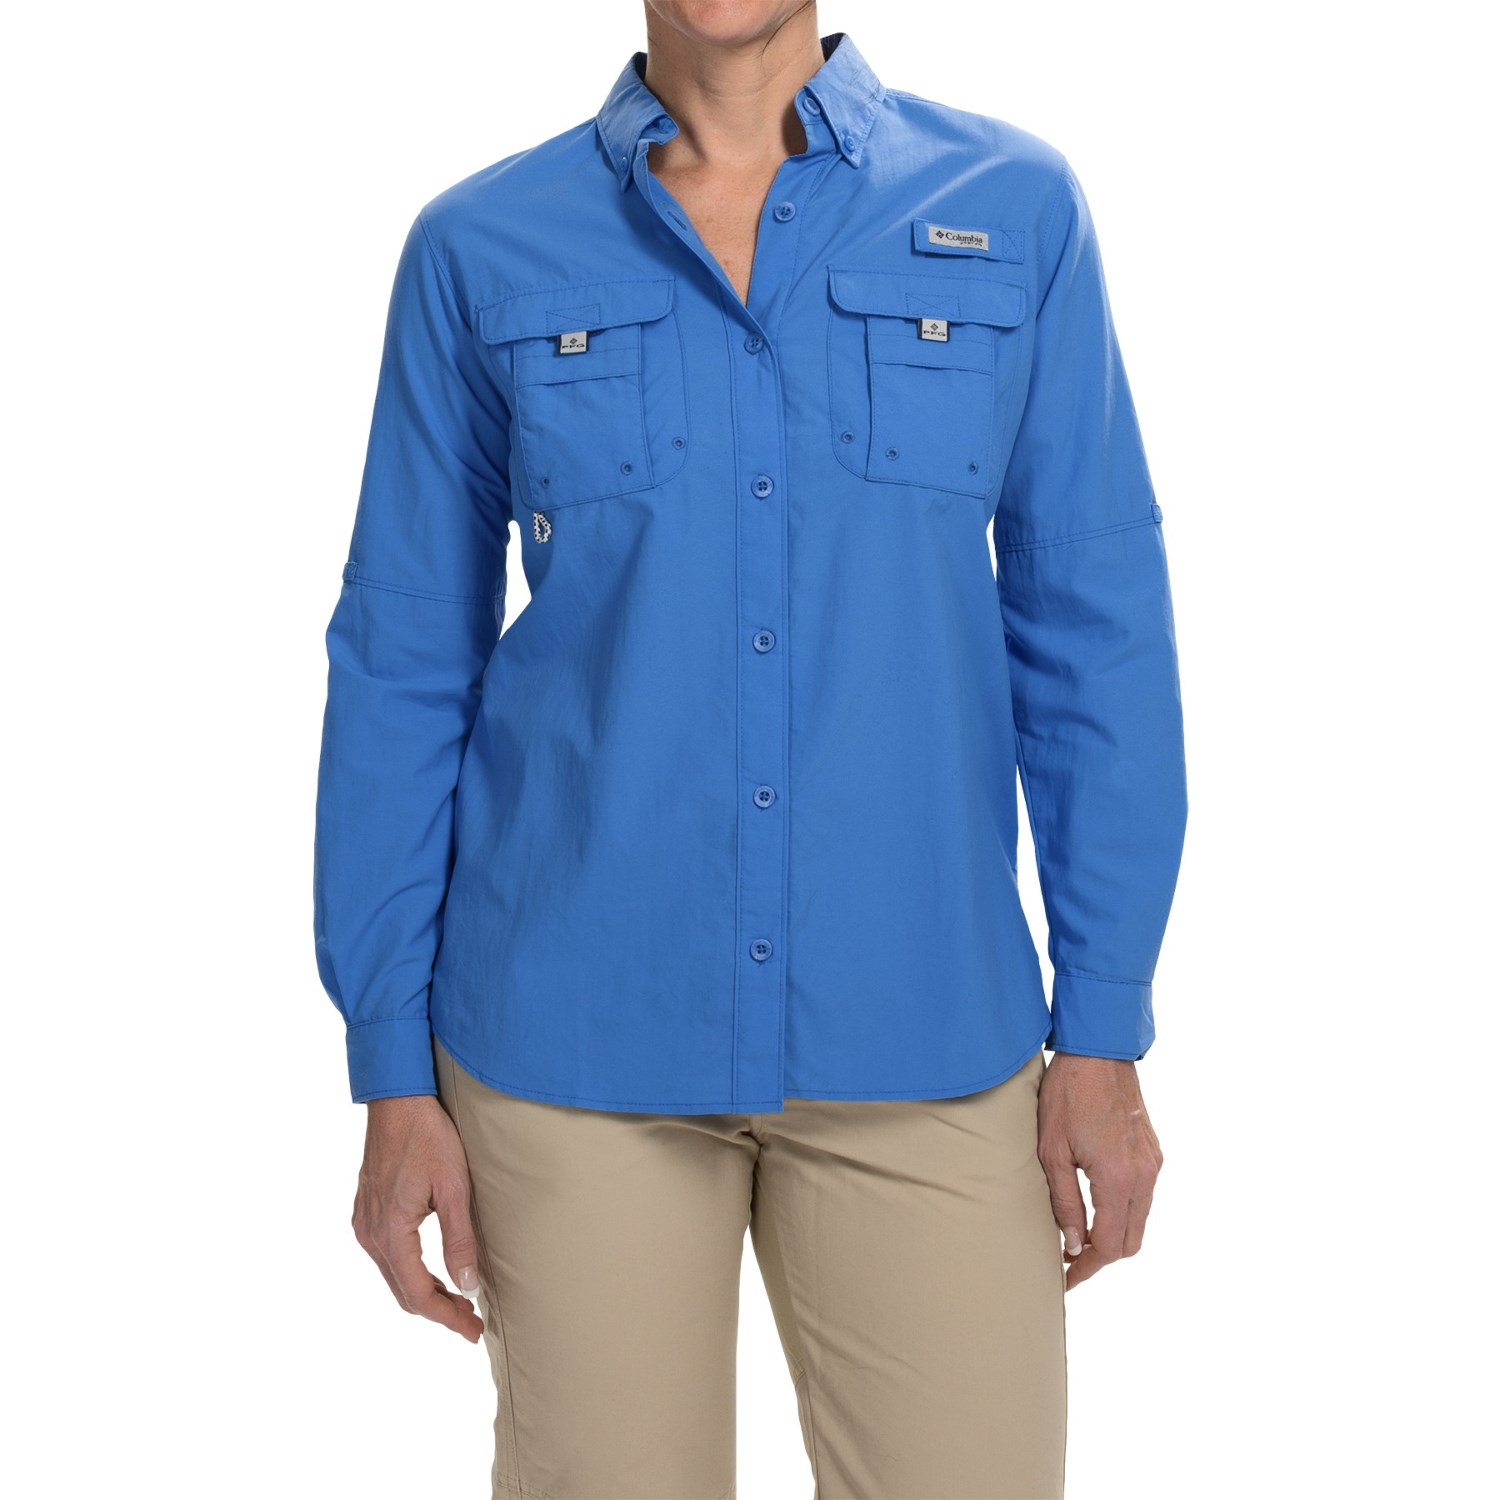 Columbia sportswear pfg bahama shirt for women 4524a for Columbia shirts womens pfg